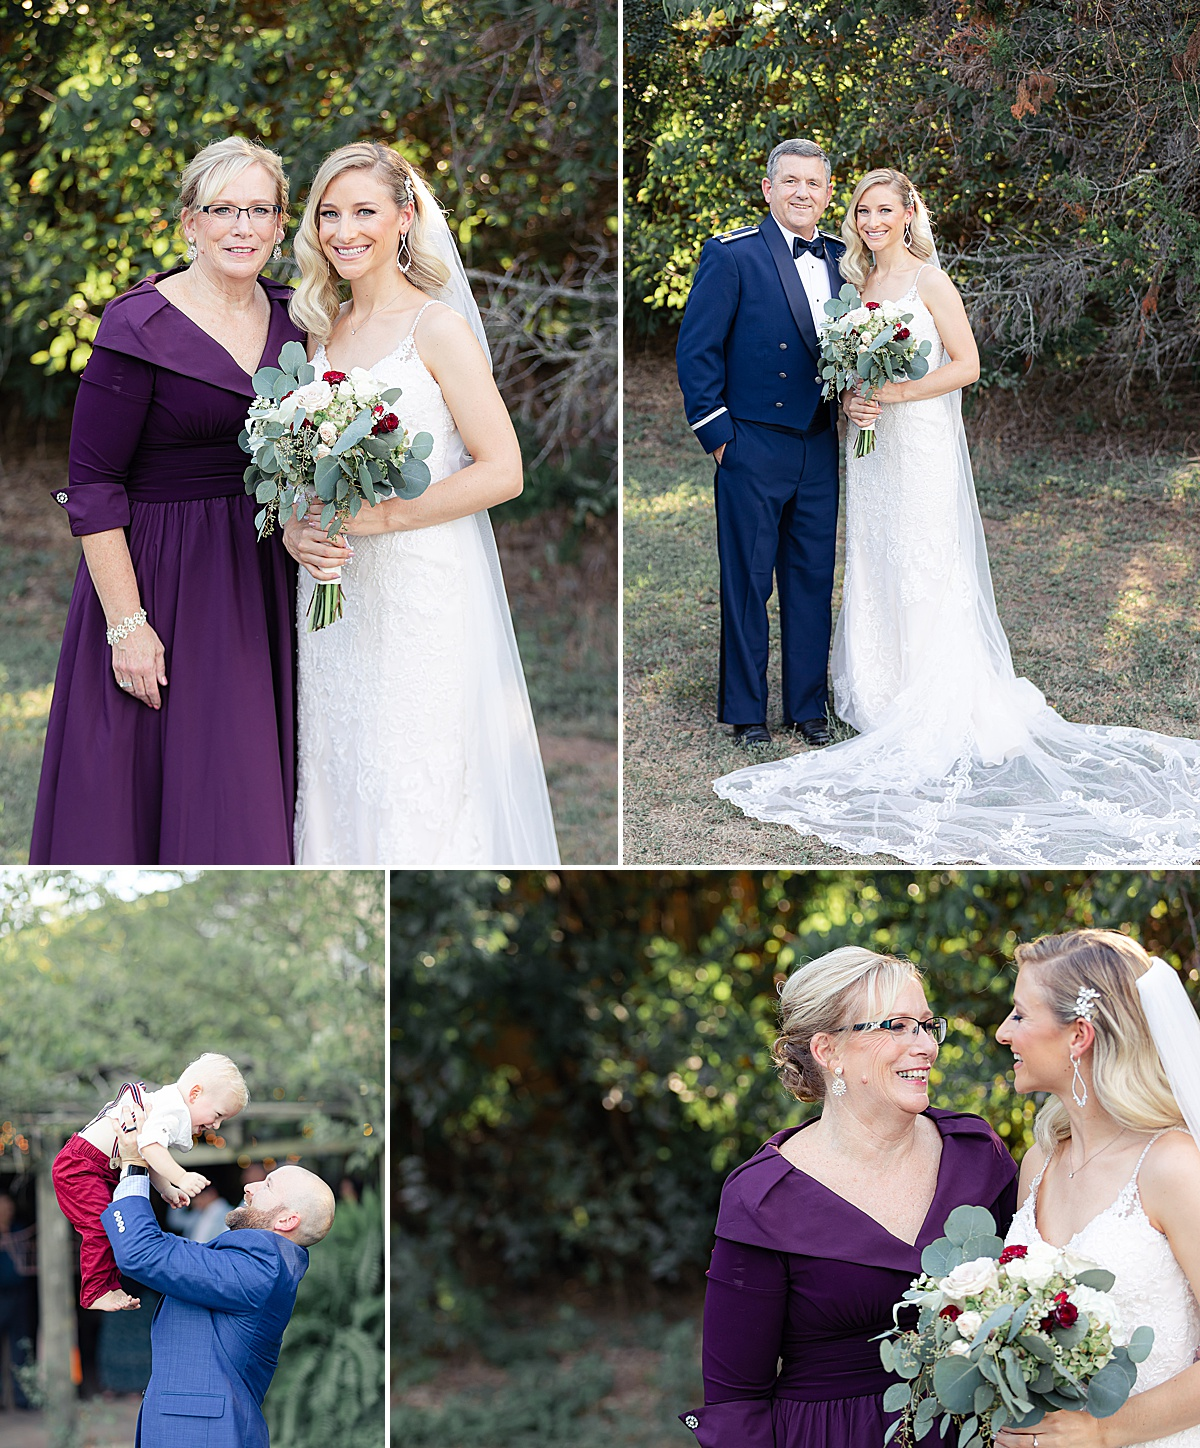 Navy-Burgundy-Blush-Texas-Wedding-Oak-Valley-Vineyards-New-Braunfels-Carly-Barton-Photography_0117.jpg